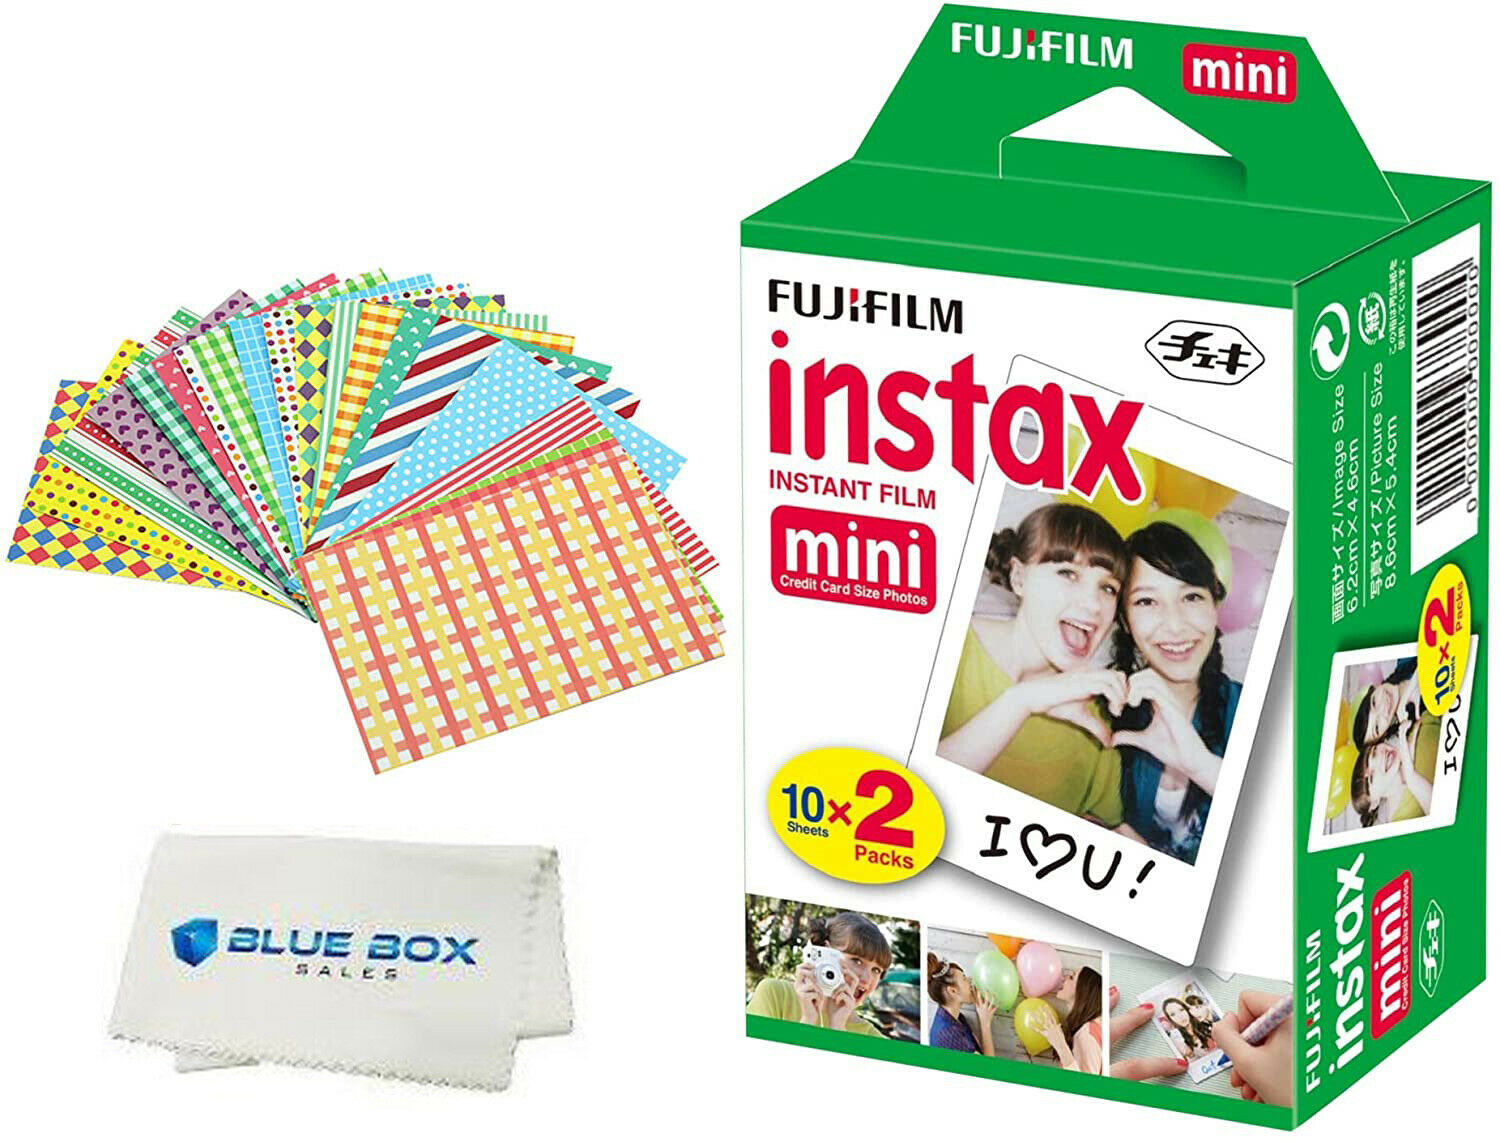 Fujifilm Instax Mini Instant Film 20 Sheets For 8 9 Cameras Paper Comic 1 Of 3free Shipping